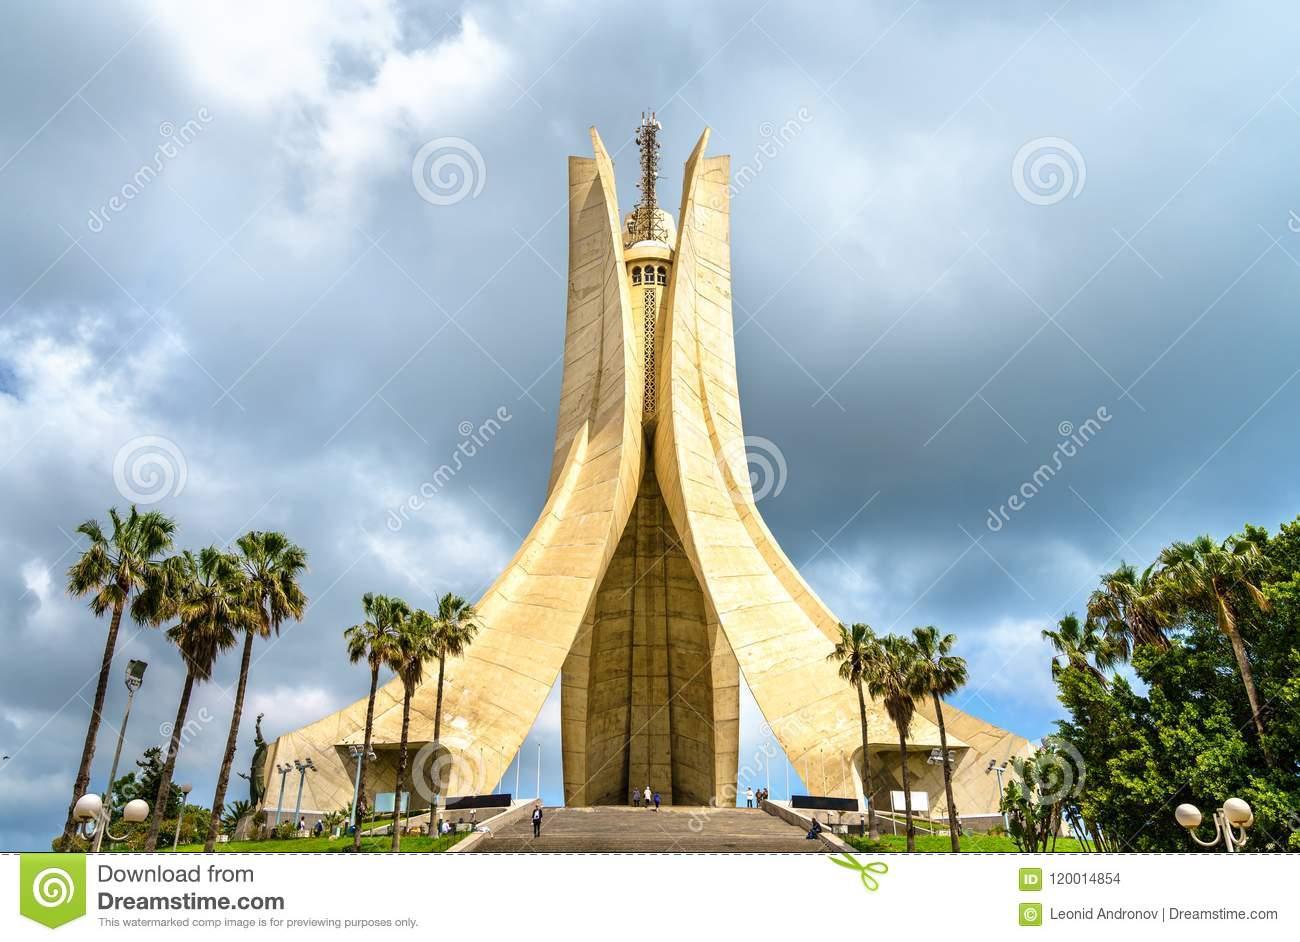 Martyrs Memorial for Heroes killed during the Algerian war of independence. Algiers